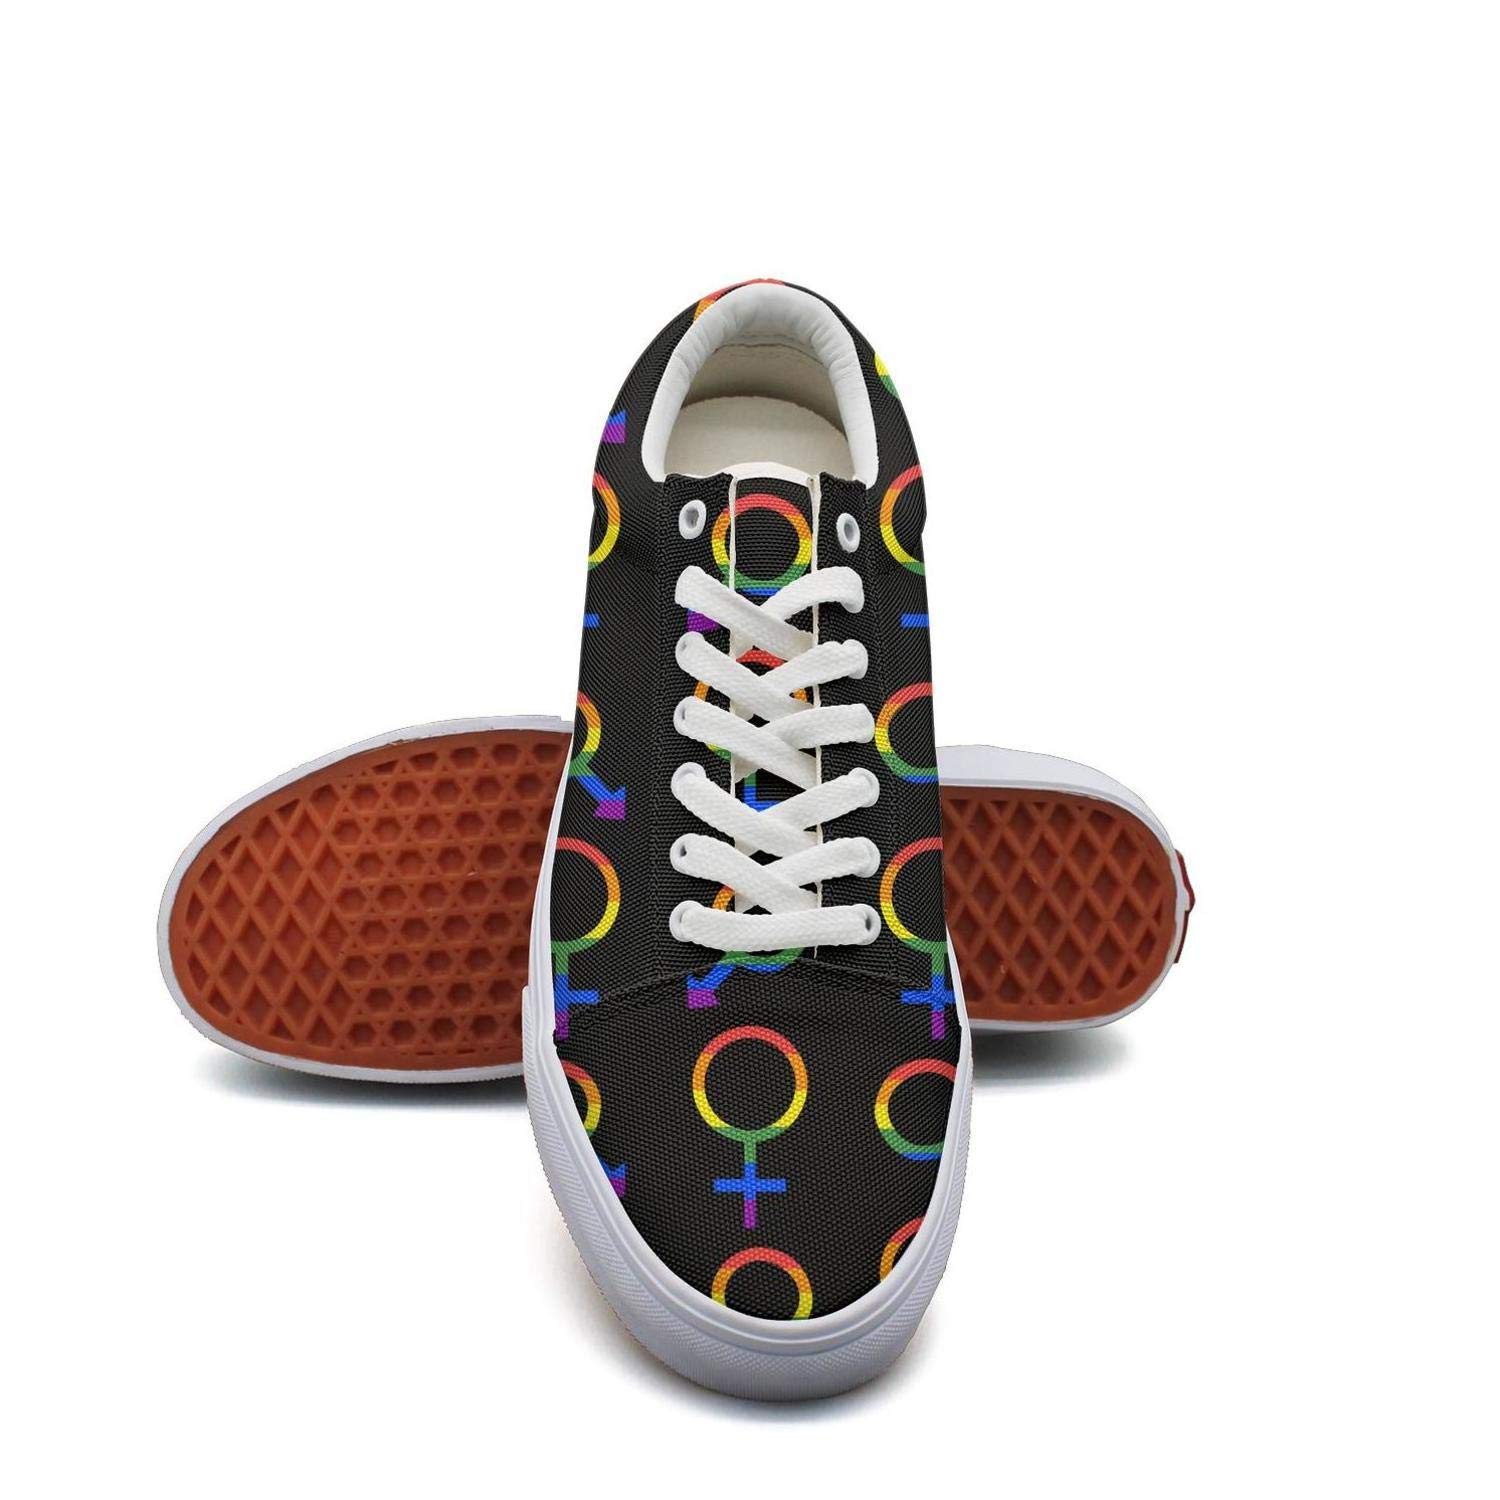 Lady Gay Rainbow Flag Star Canvas Shoes Low-Cut StrapsLeisure Comfortable Round Sneakers Suitable for Walking